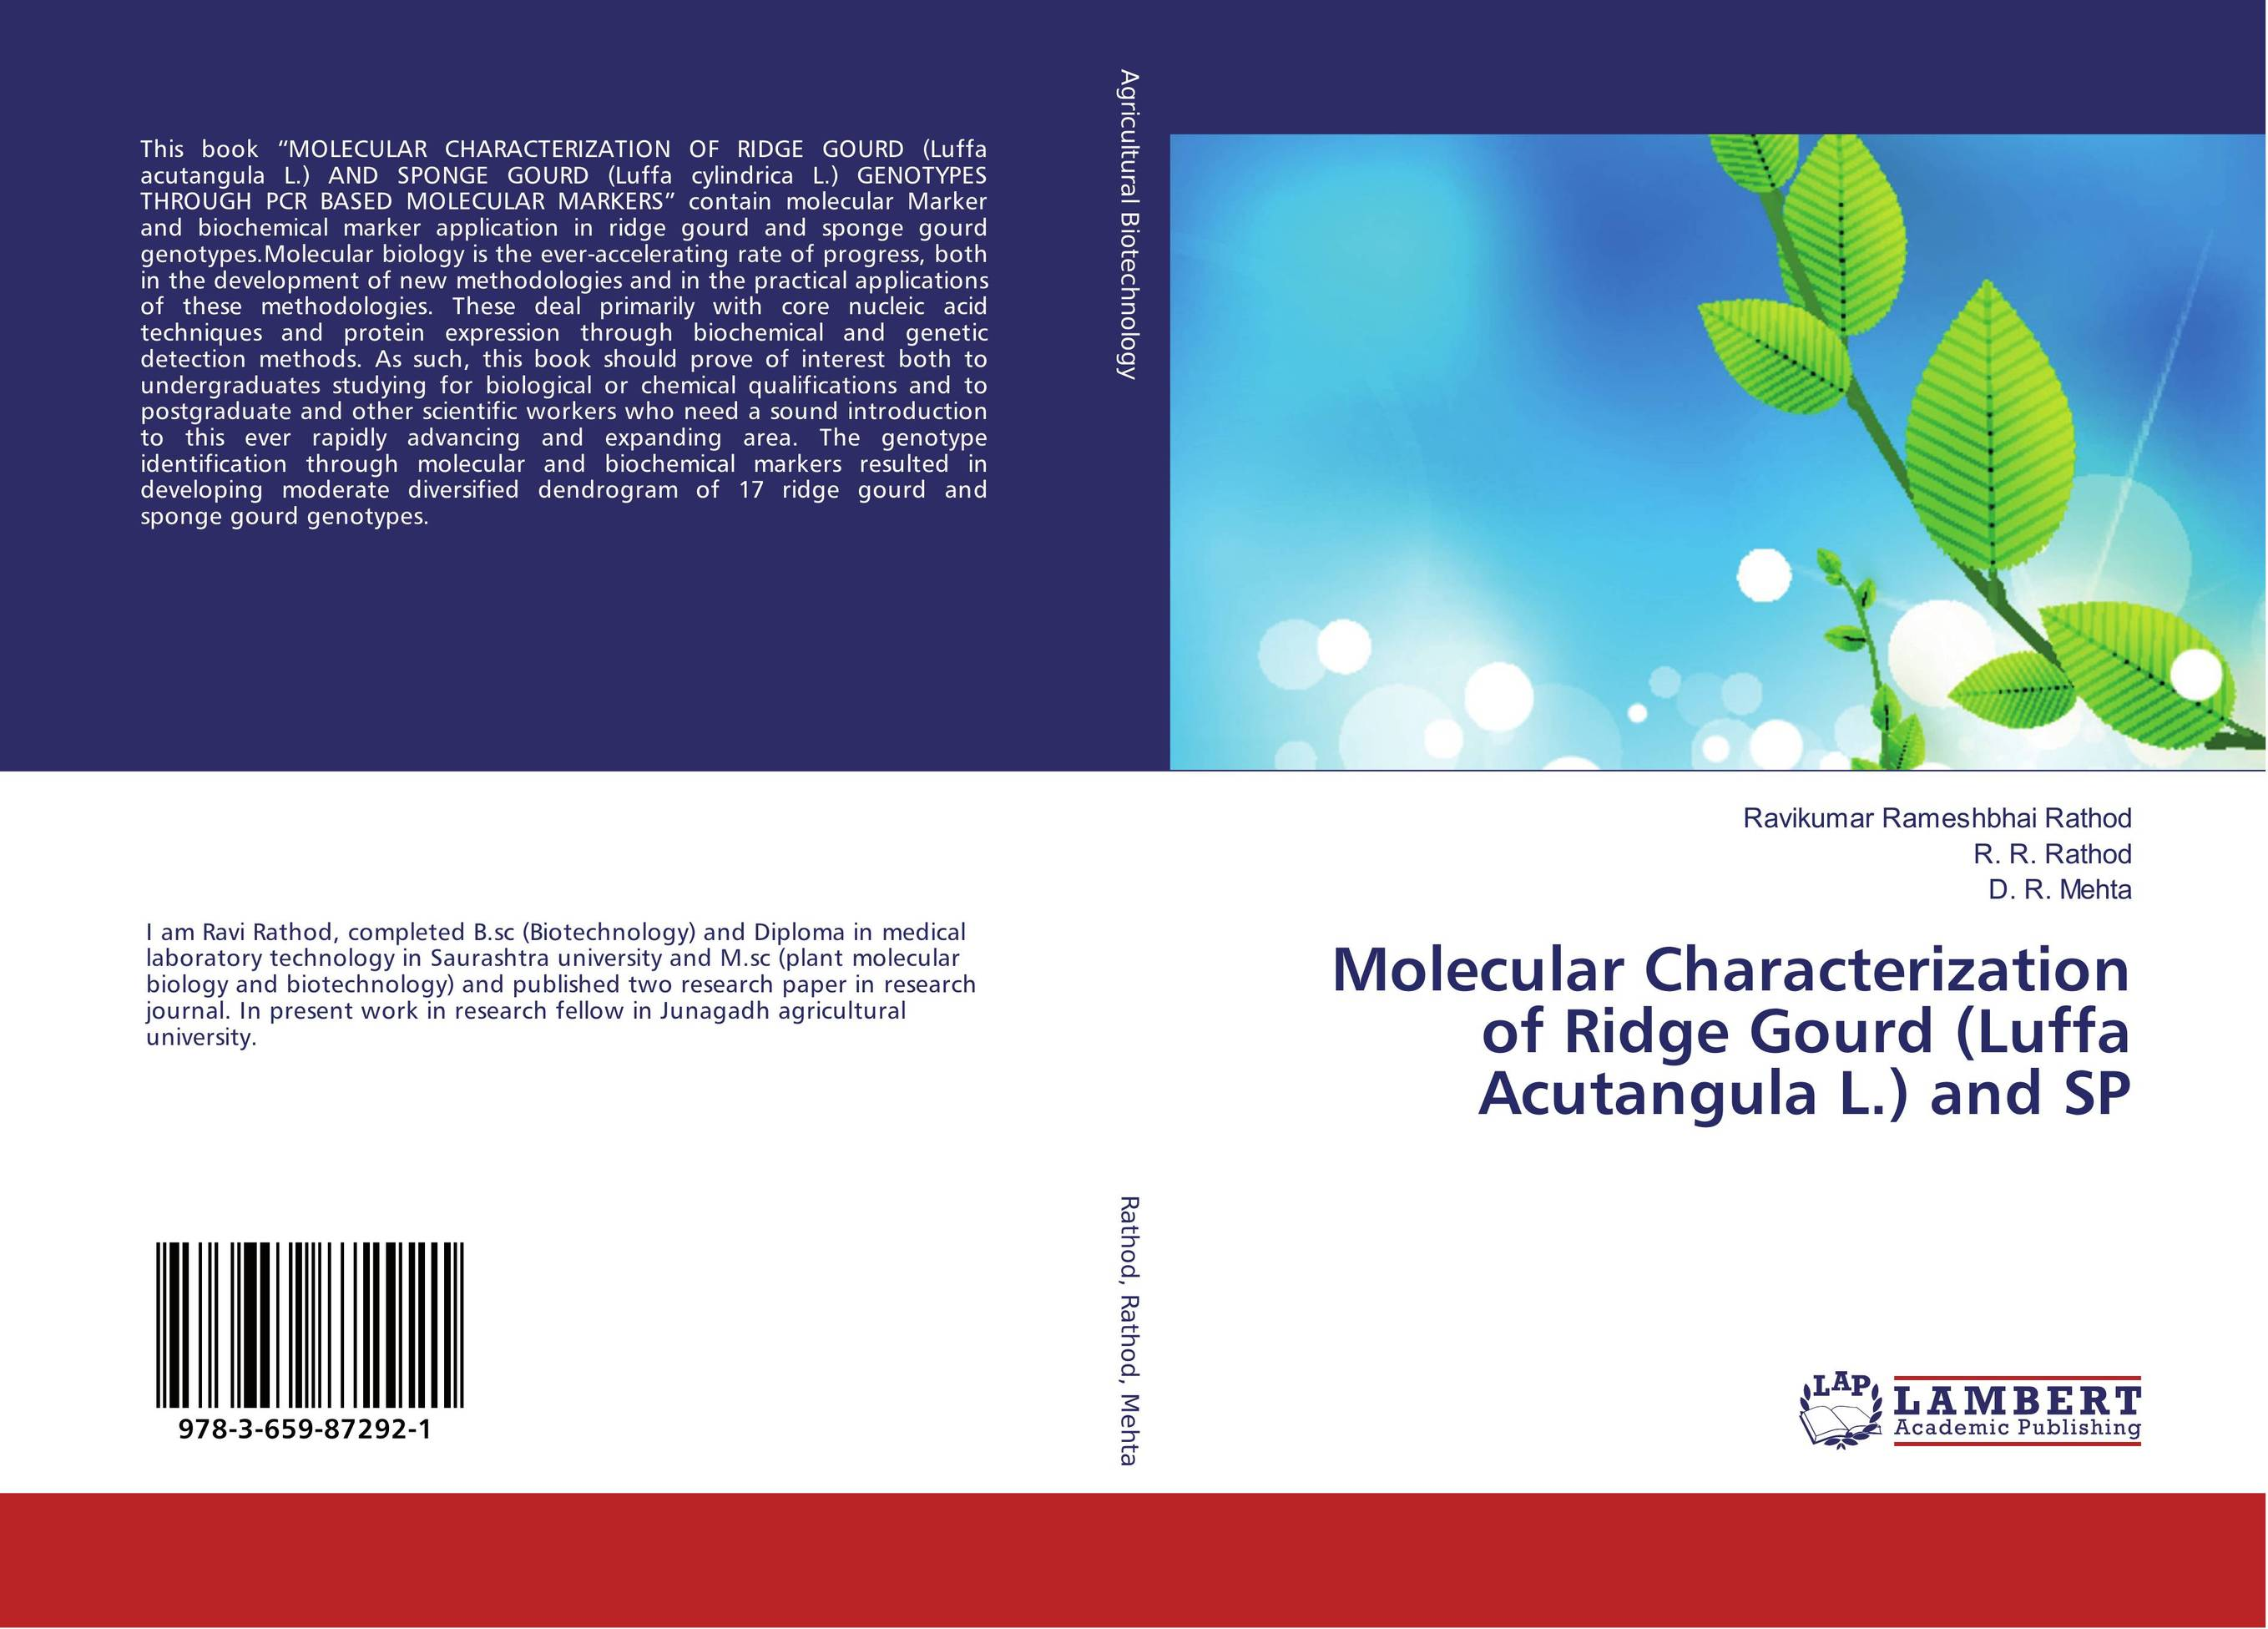 Molecular Characterization of Ridge Gourd (Luffa Acutangula L.) and SP progress in nucleic acid research and molecular biology volume 82 progress in nucleic acid research and molecular biology progress in nucleic acid research and molecular biology